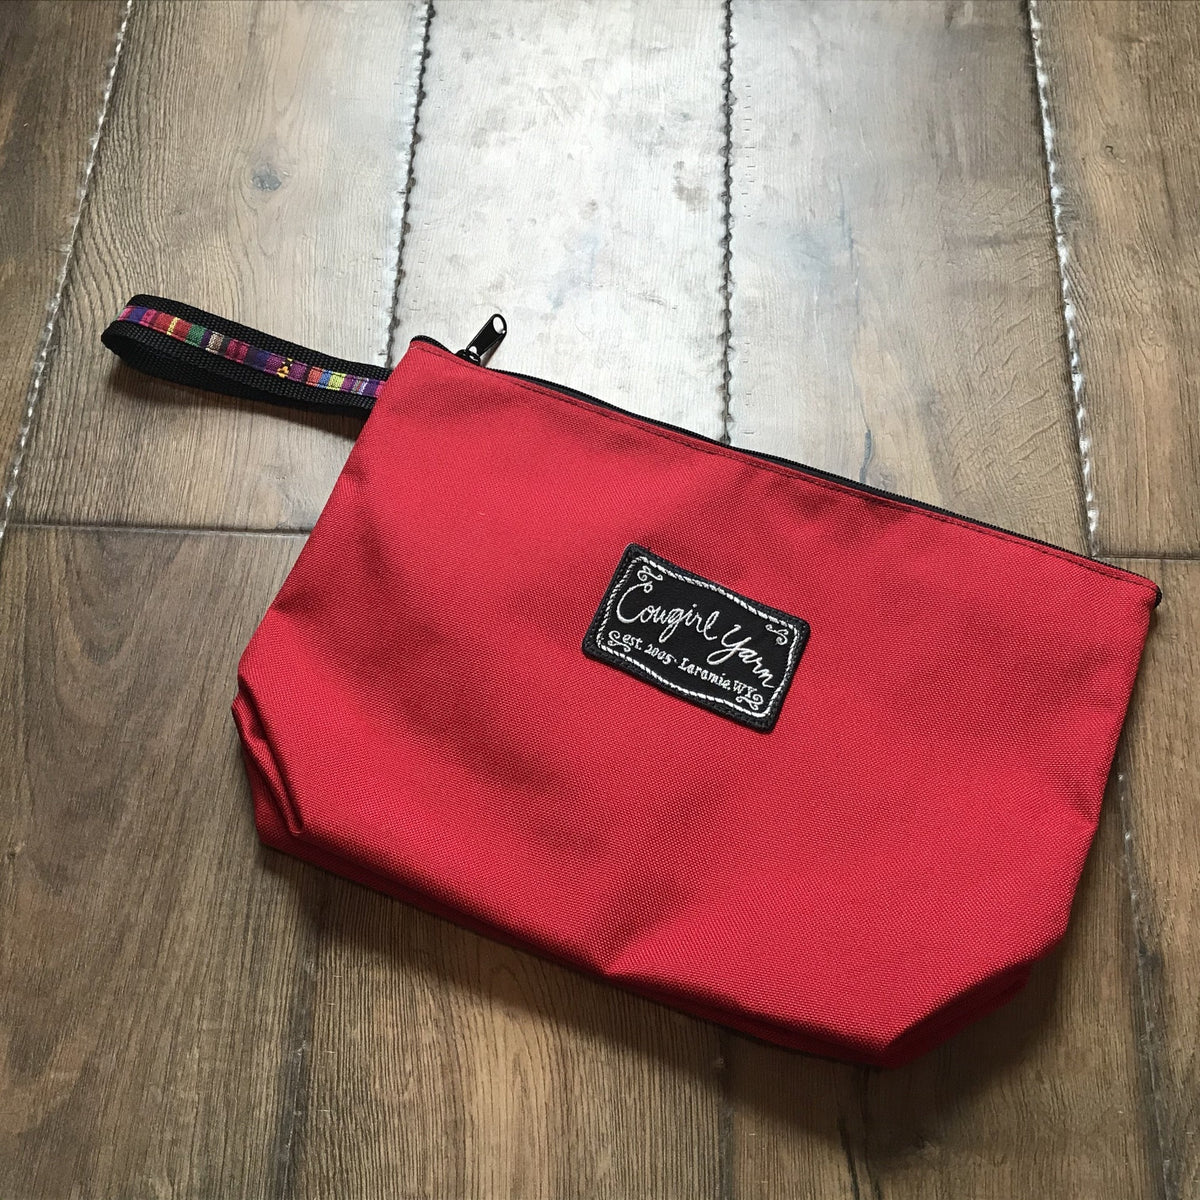 A bright red, zippered pouch featuring the Cowgirl Yarn logo